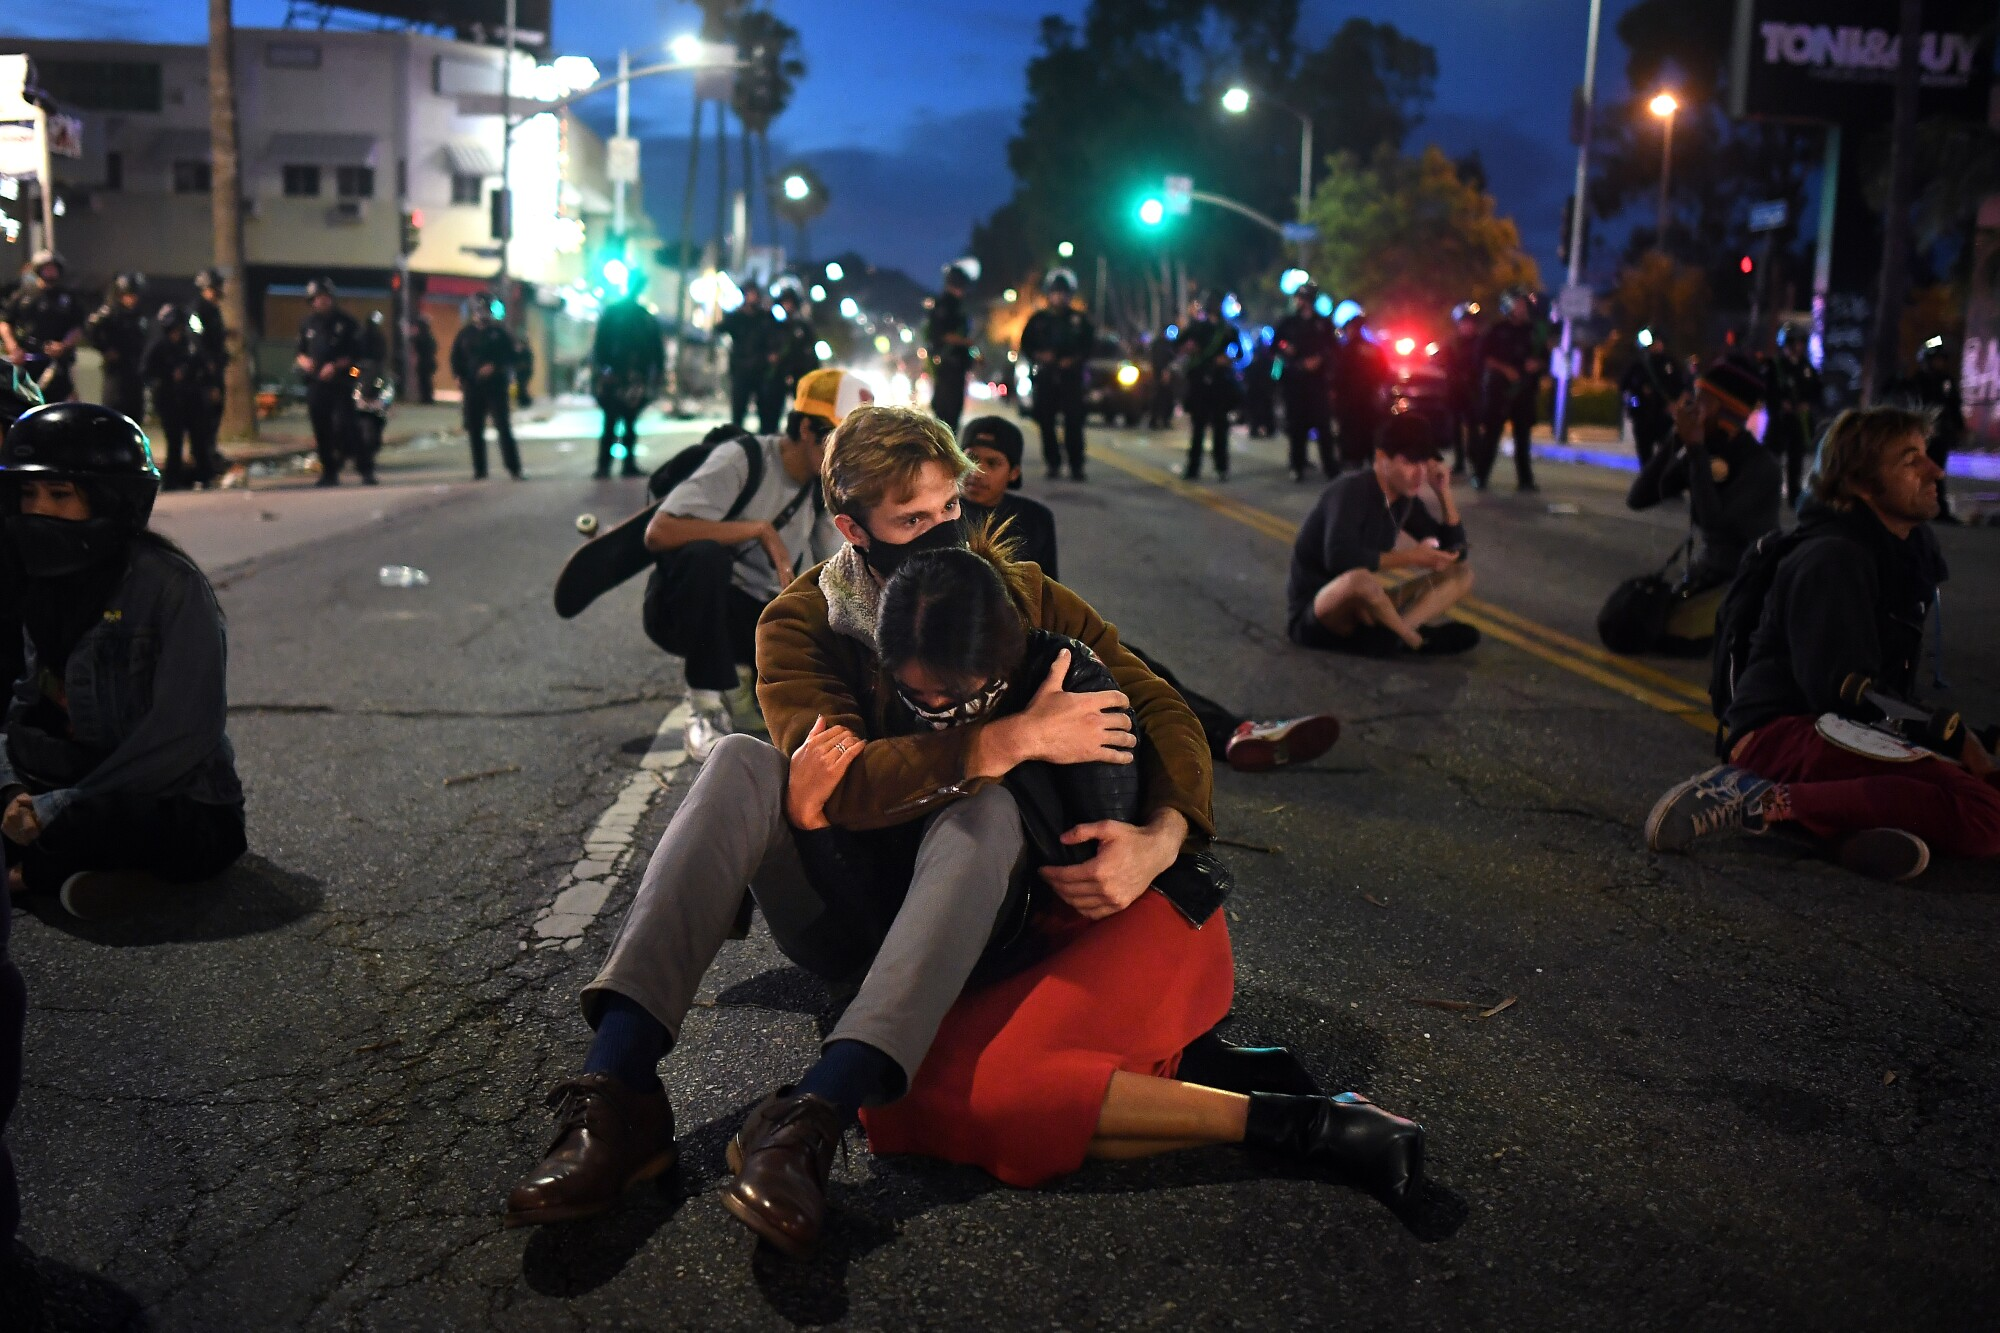 A couple who took part  in the L.A. protest protest hug on Fairfax Avenue.